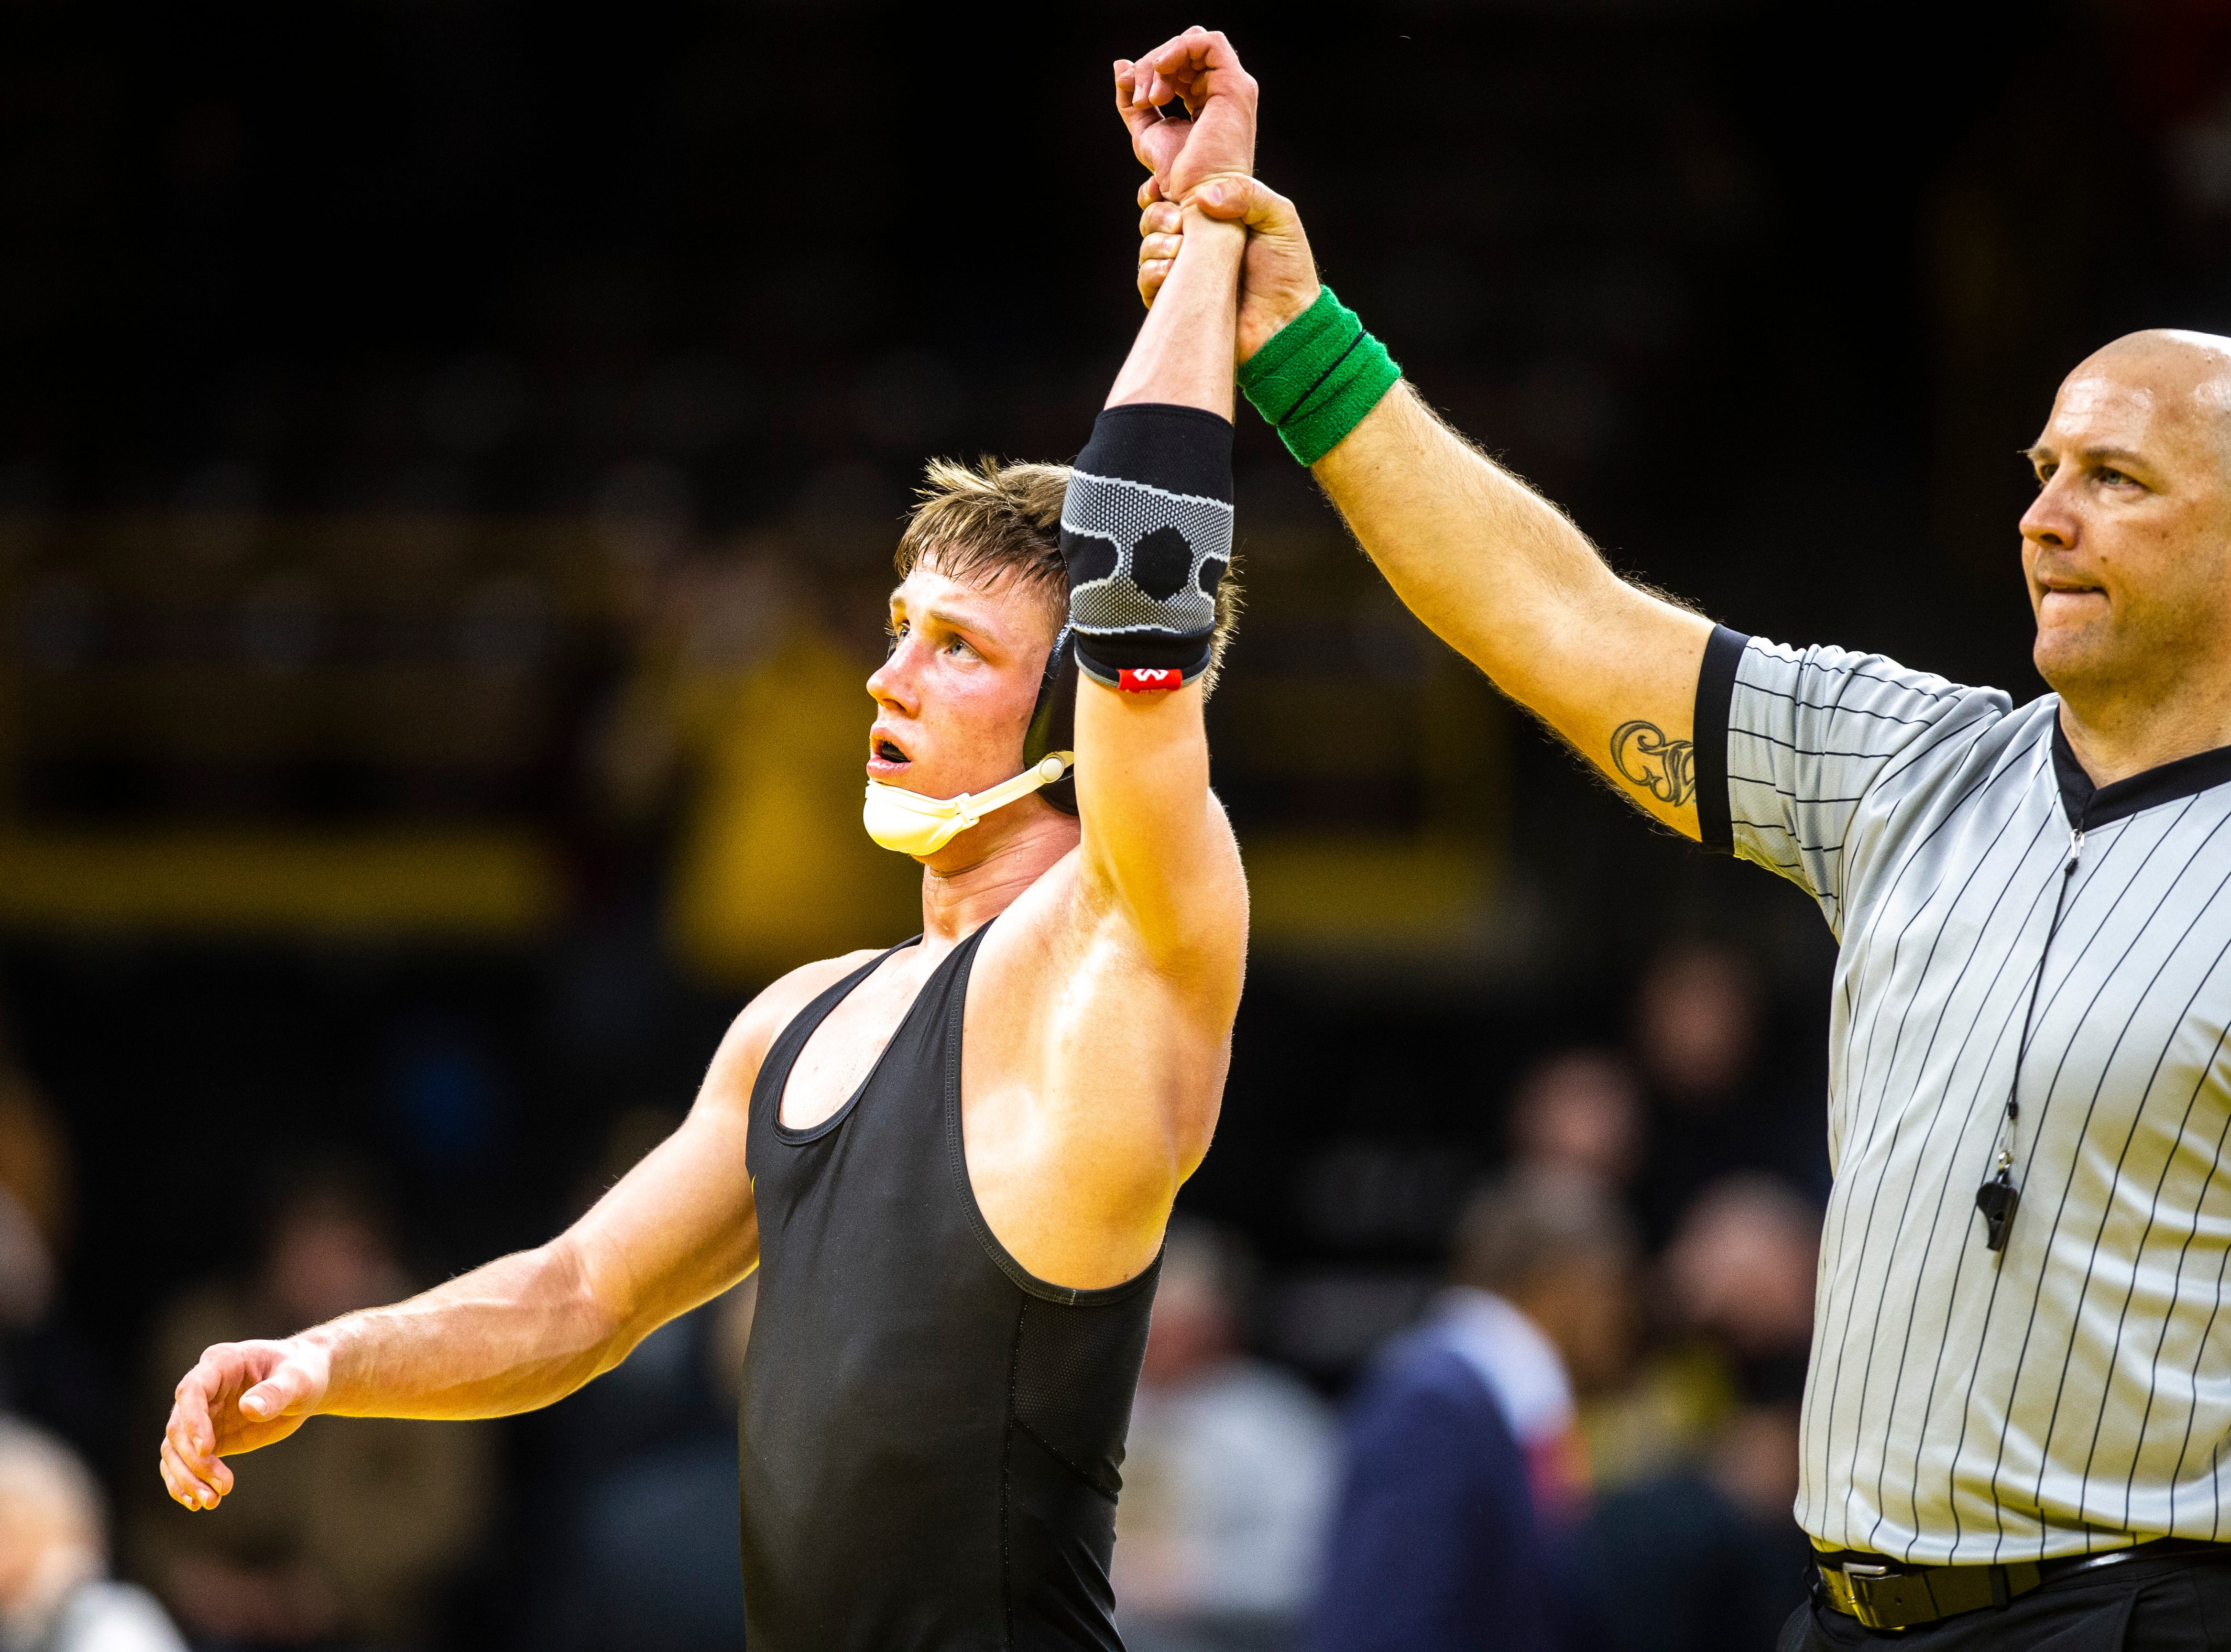 Iowa's Max Murin has his hand raised after scoring a major decision over Maryland's Danny Bertoni at 141 during a NCAA Big Ten Conference wrestling dual on Friday, Feb. 8, 2019 at Carver-Hawkeye Arena in Iowa City, Iowa.